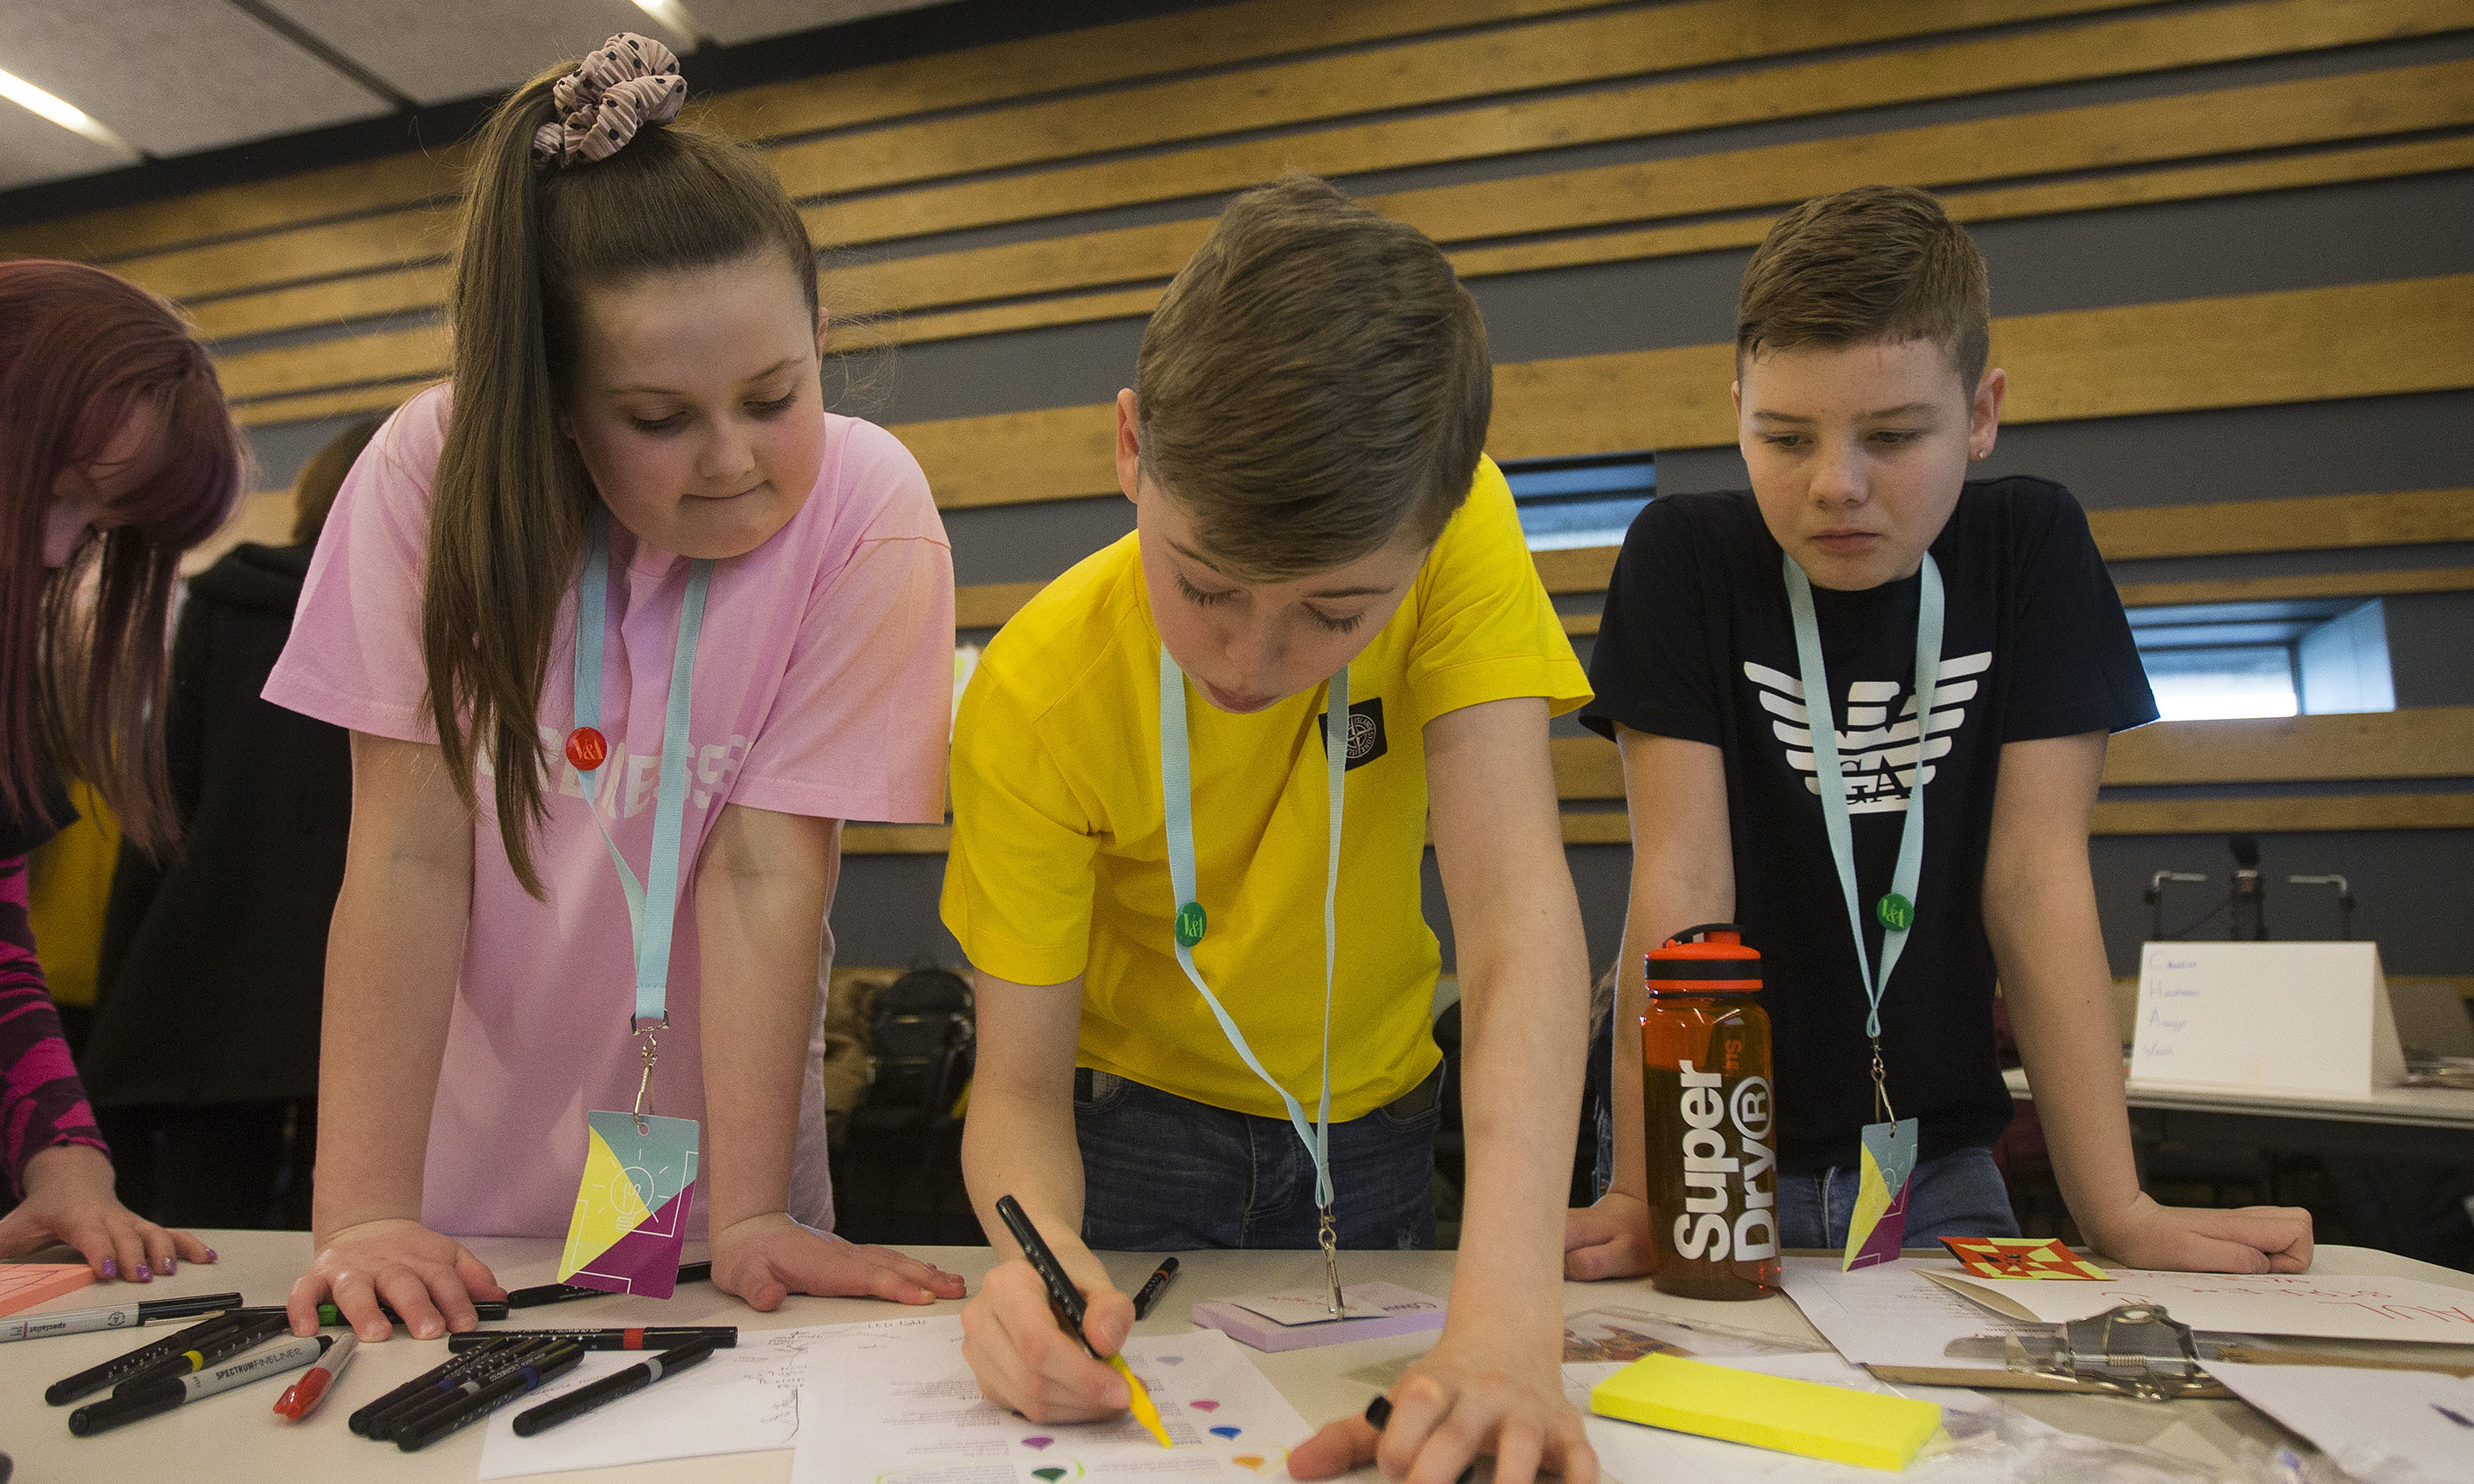 Pupils Ailie Paterson, Junior Healy and Dylan McPhail from St Paul's Academy take part in Schools Design Jam at V&A Dundee.